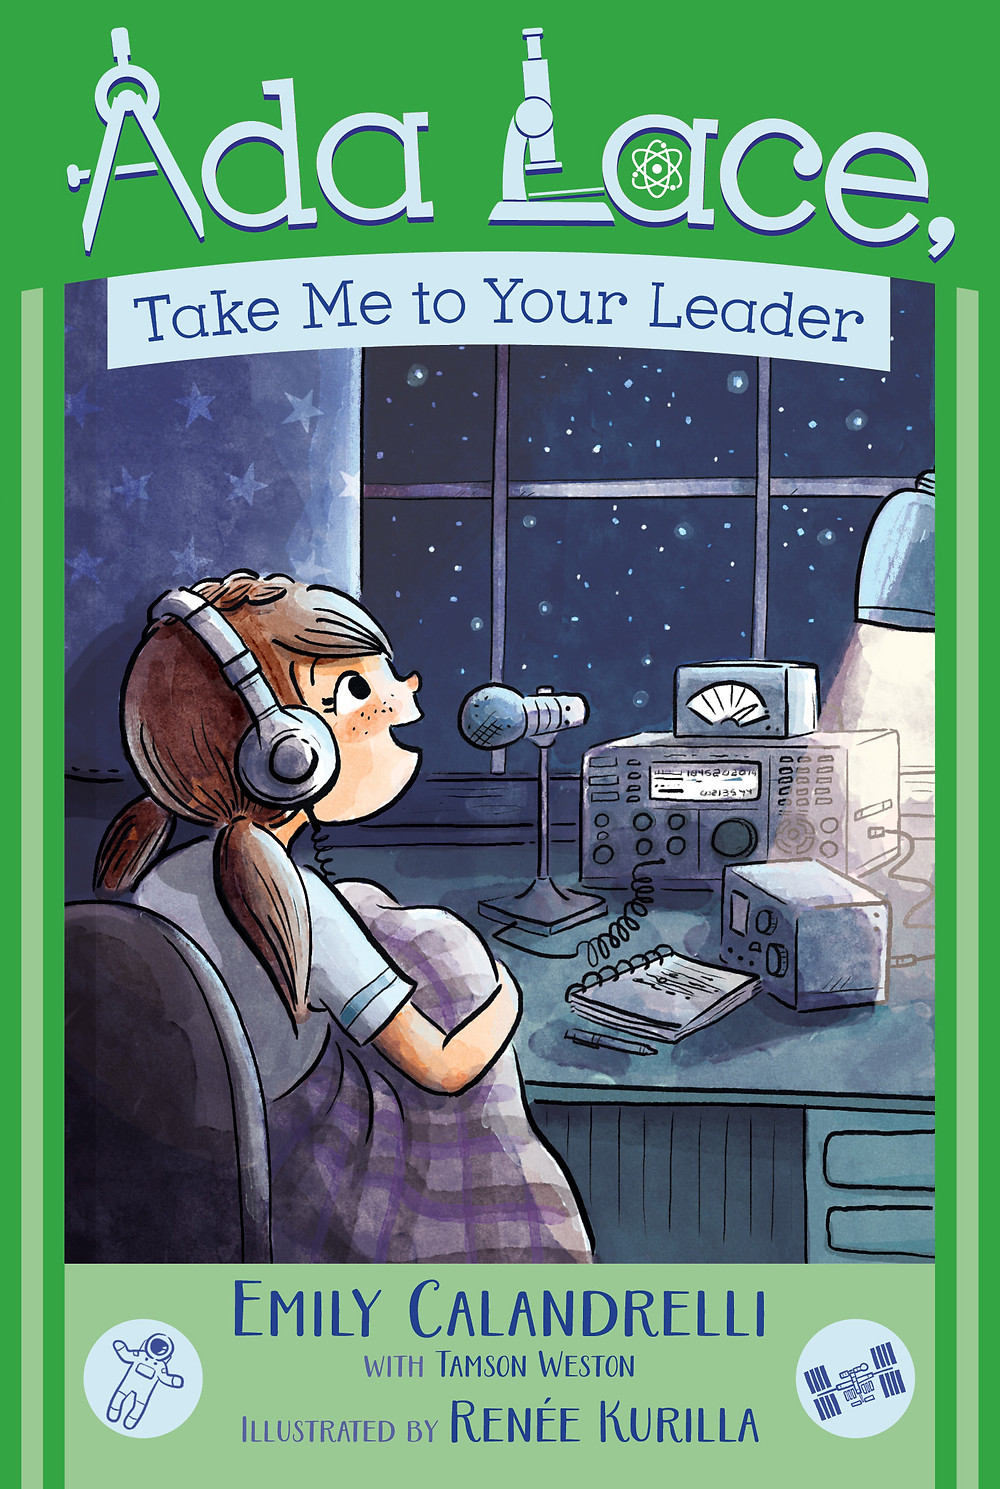 Ada Lace, Take Me to you Leader